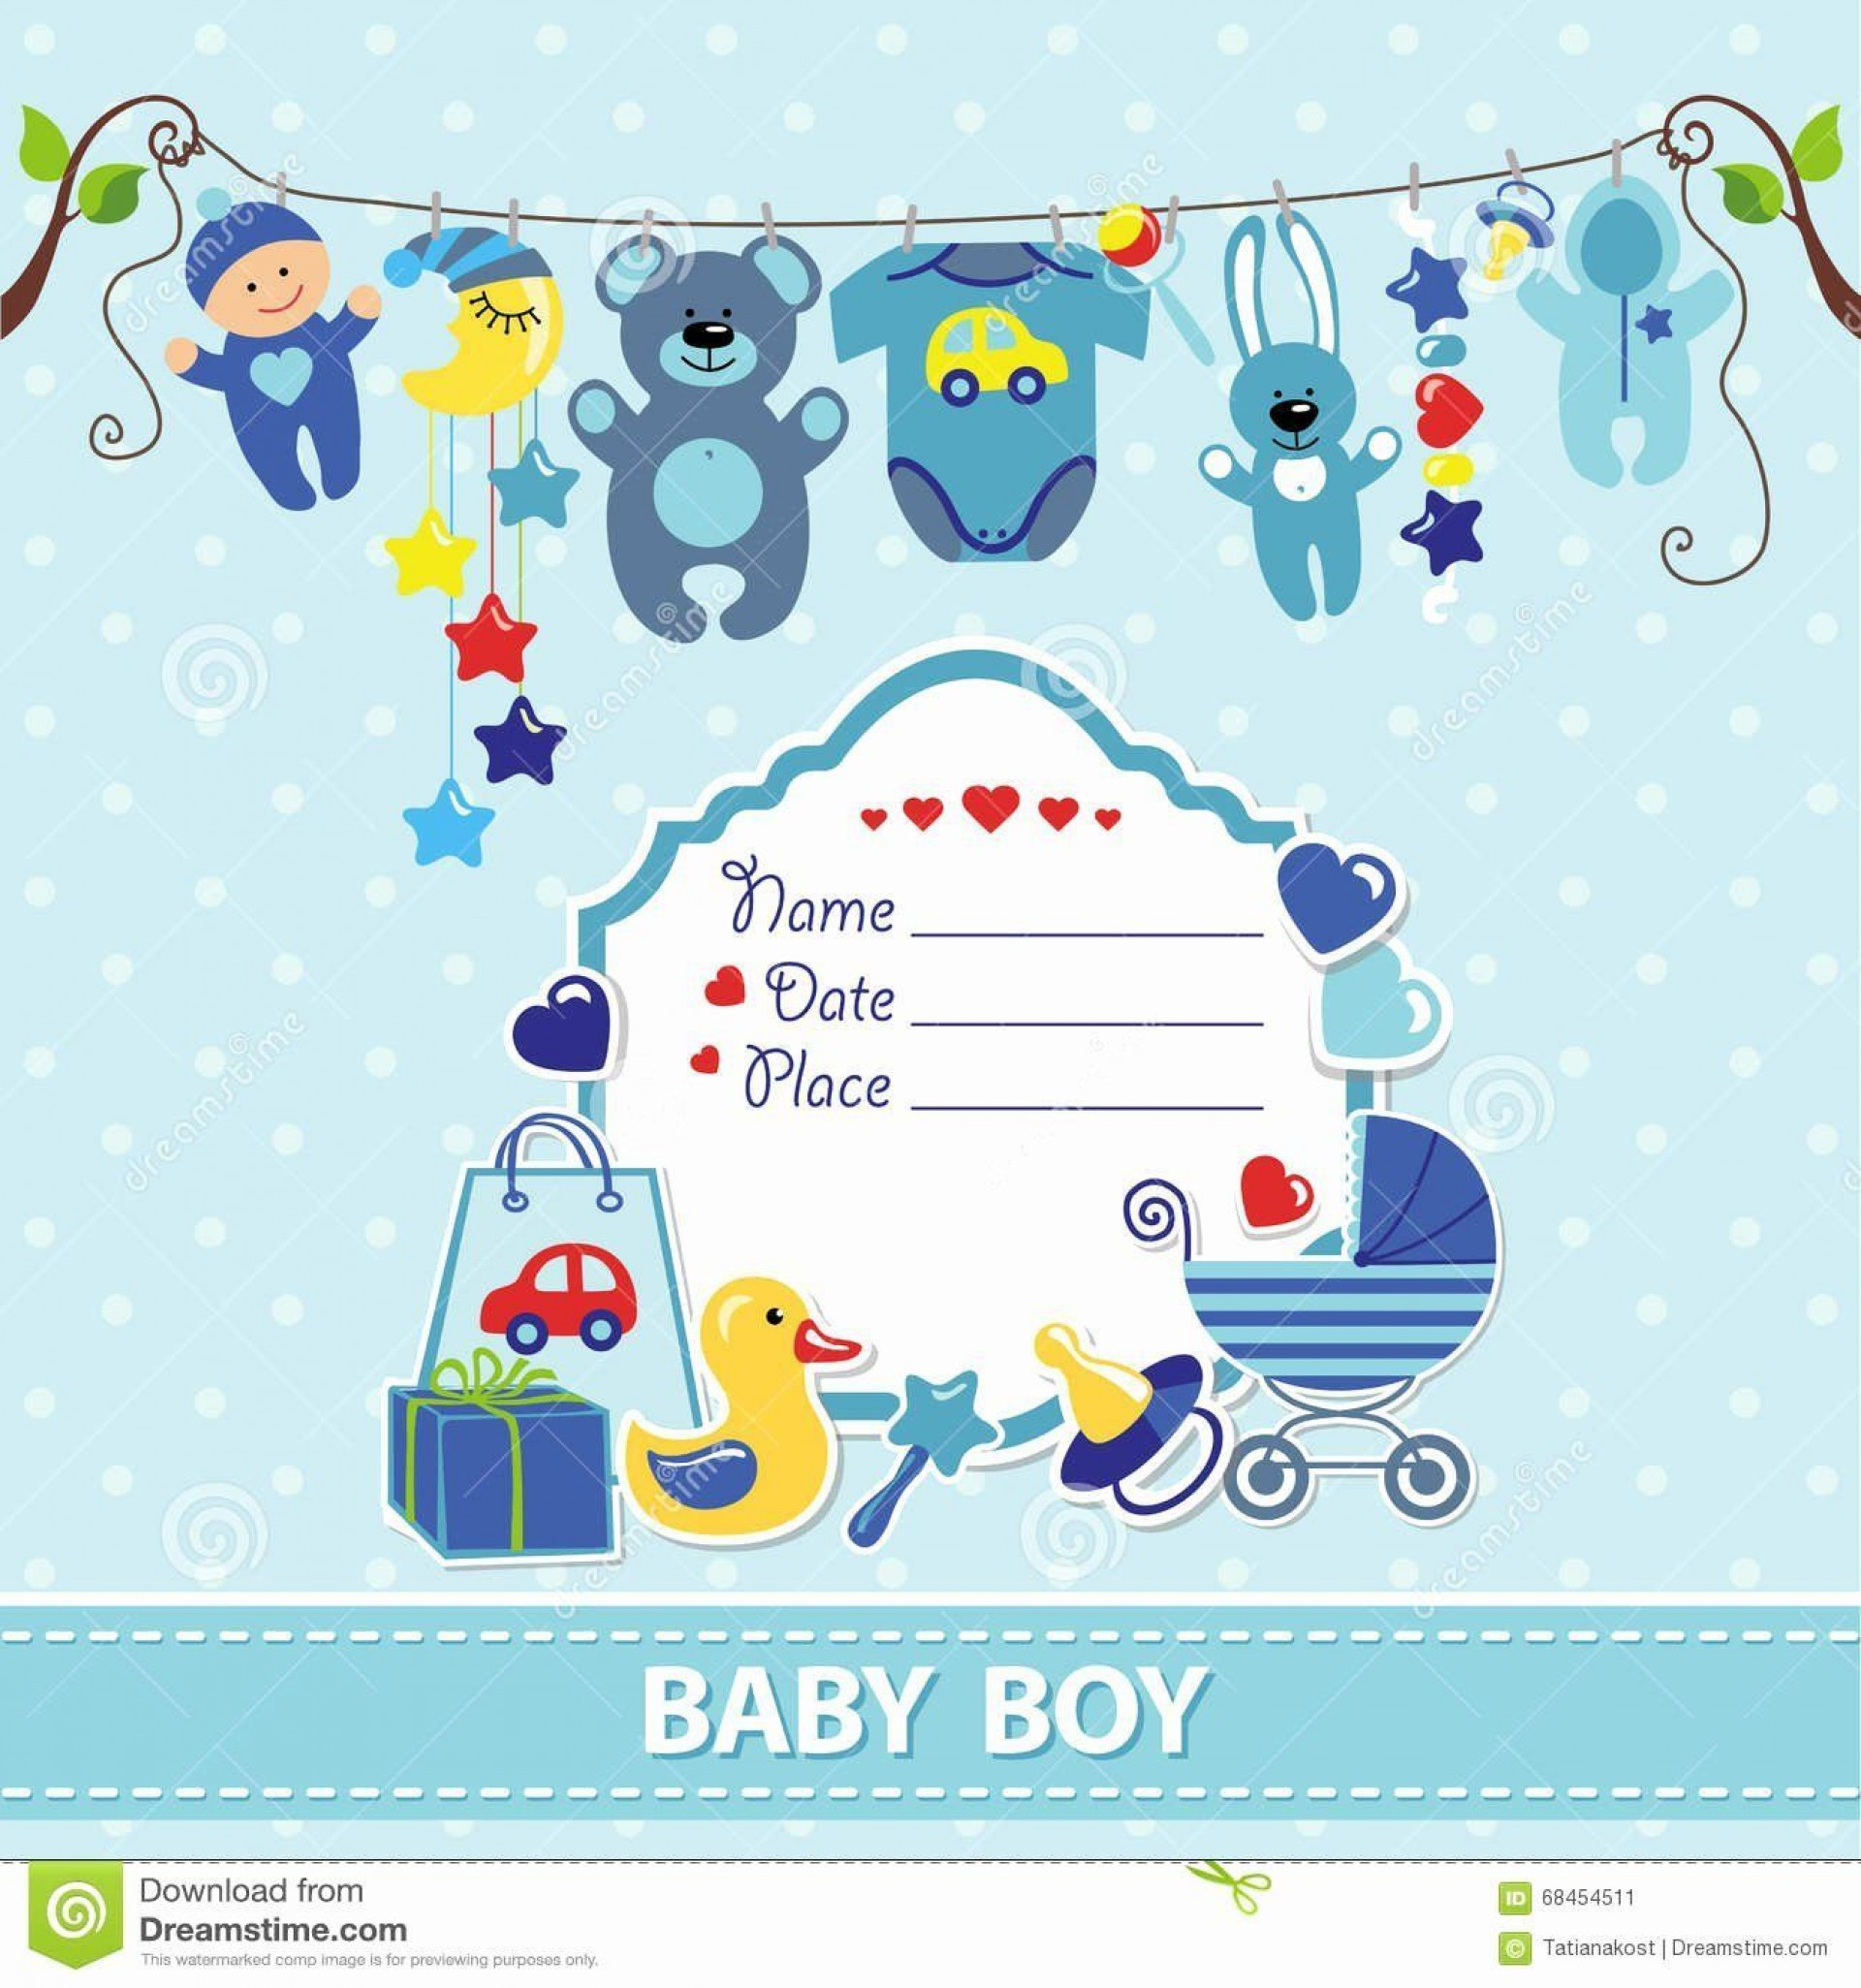 000 Fearsome Free Printable Baby Shower Card For Boy High Definition  Bingo1920